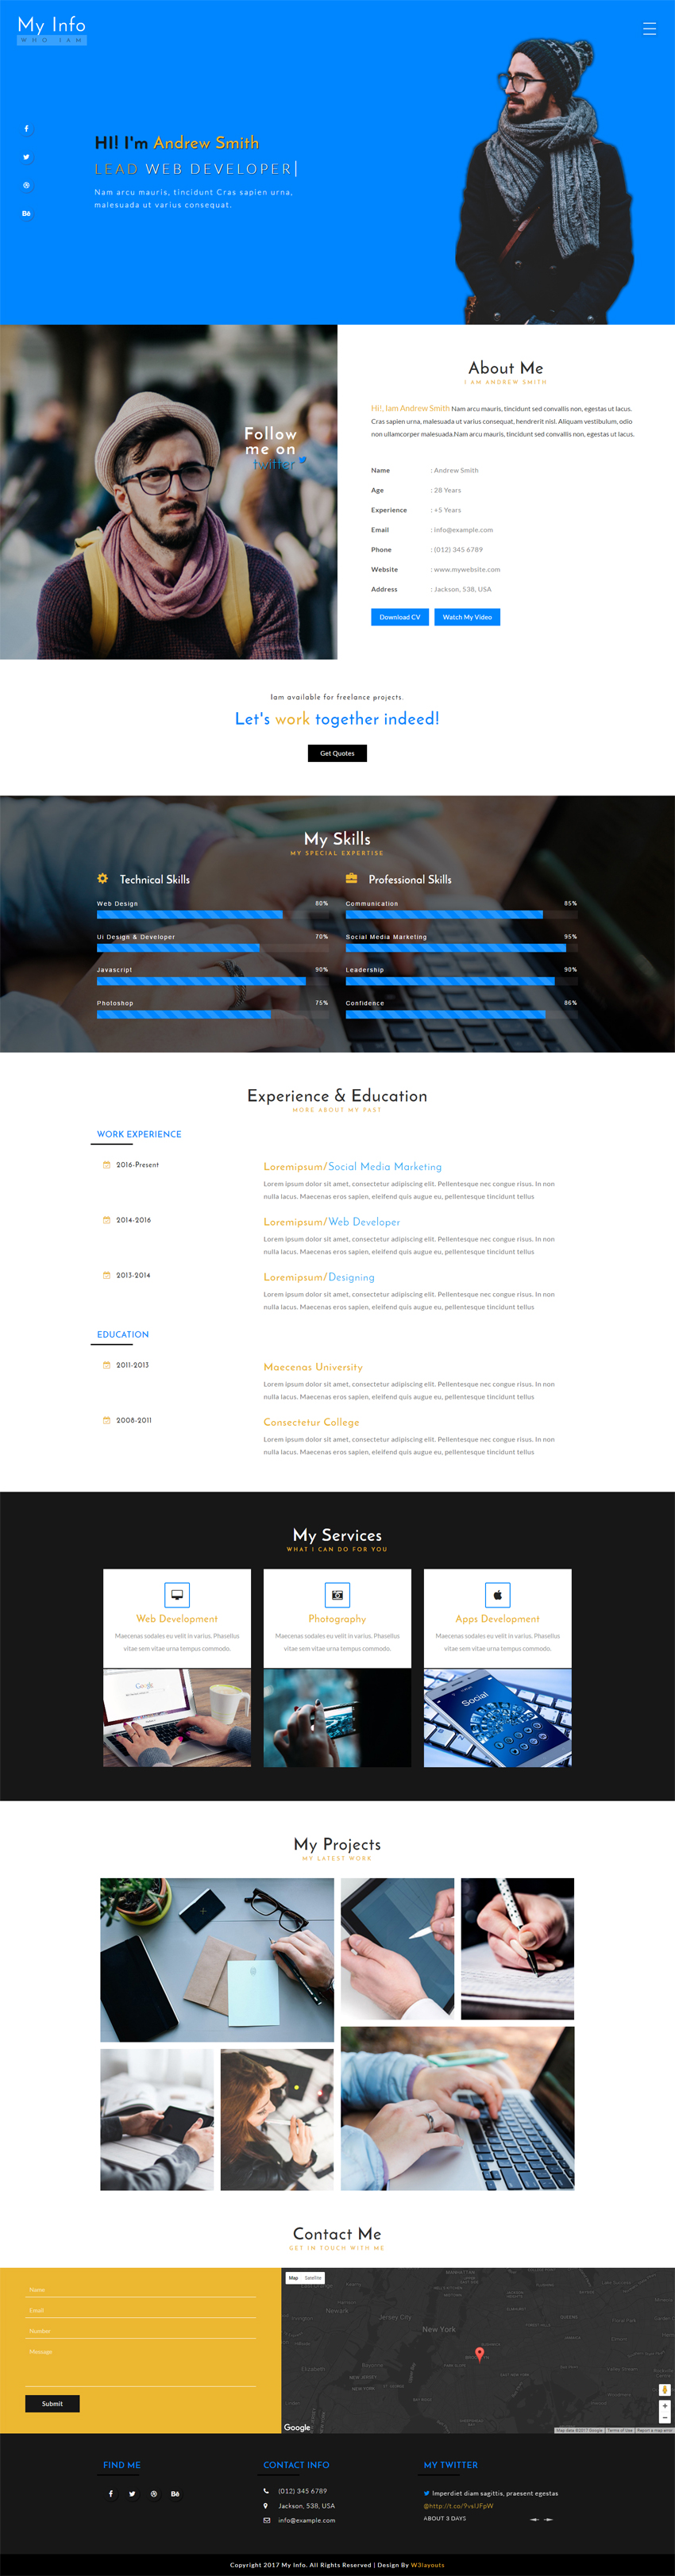 My info personal profile bootstrap responsive web template free my info personal profile bootstrap responsive web template maxwellsz